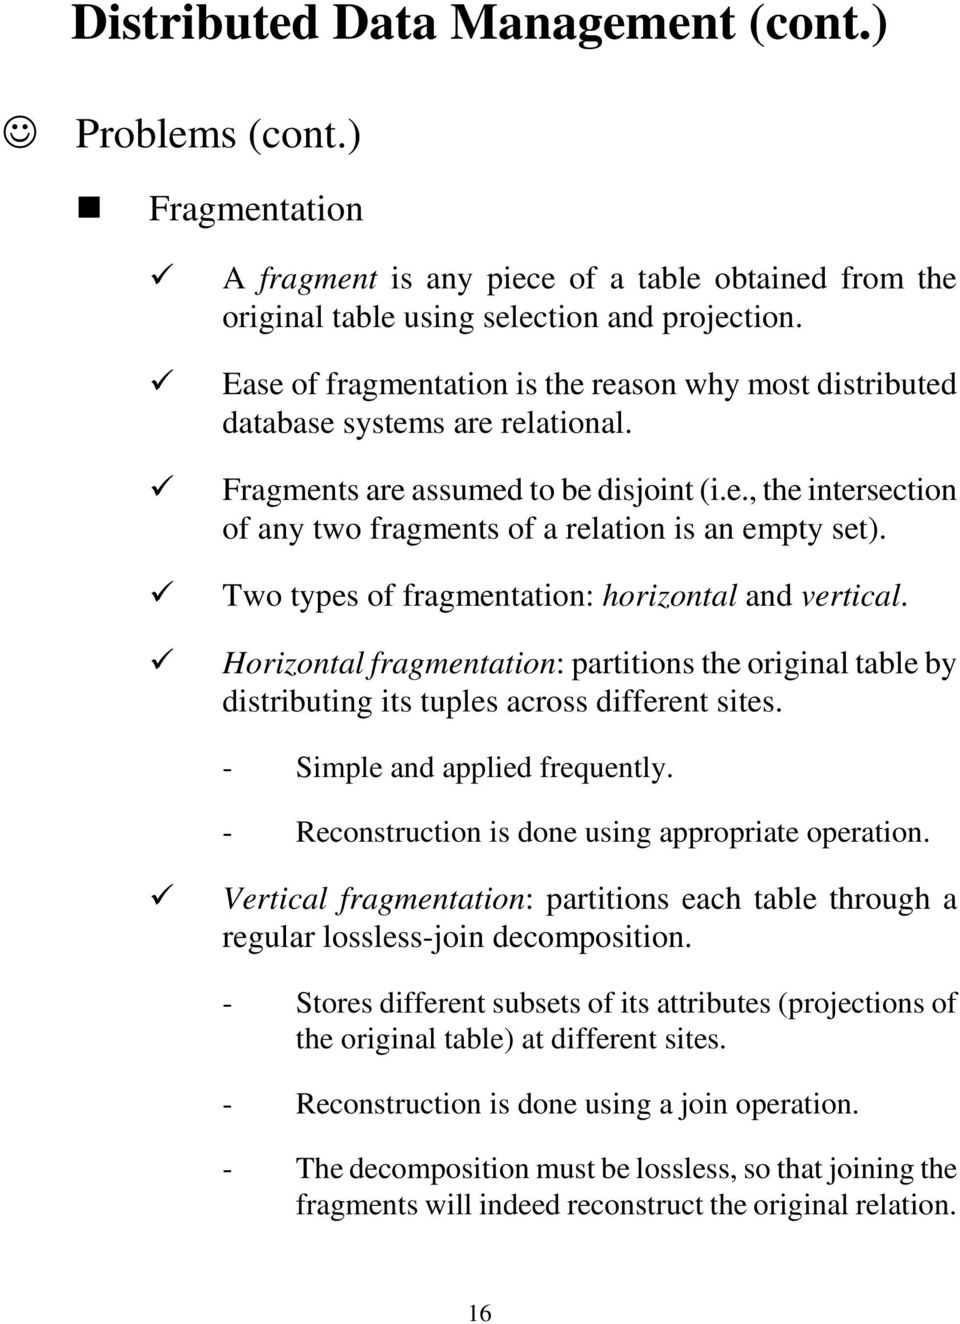 Two types of fragmentation: horizontal and vertical. Horizontal fragmentation: partitions the original table by distributing its tuples across different sites. - Simple and applied frequently.